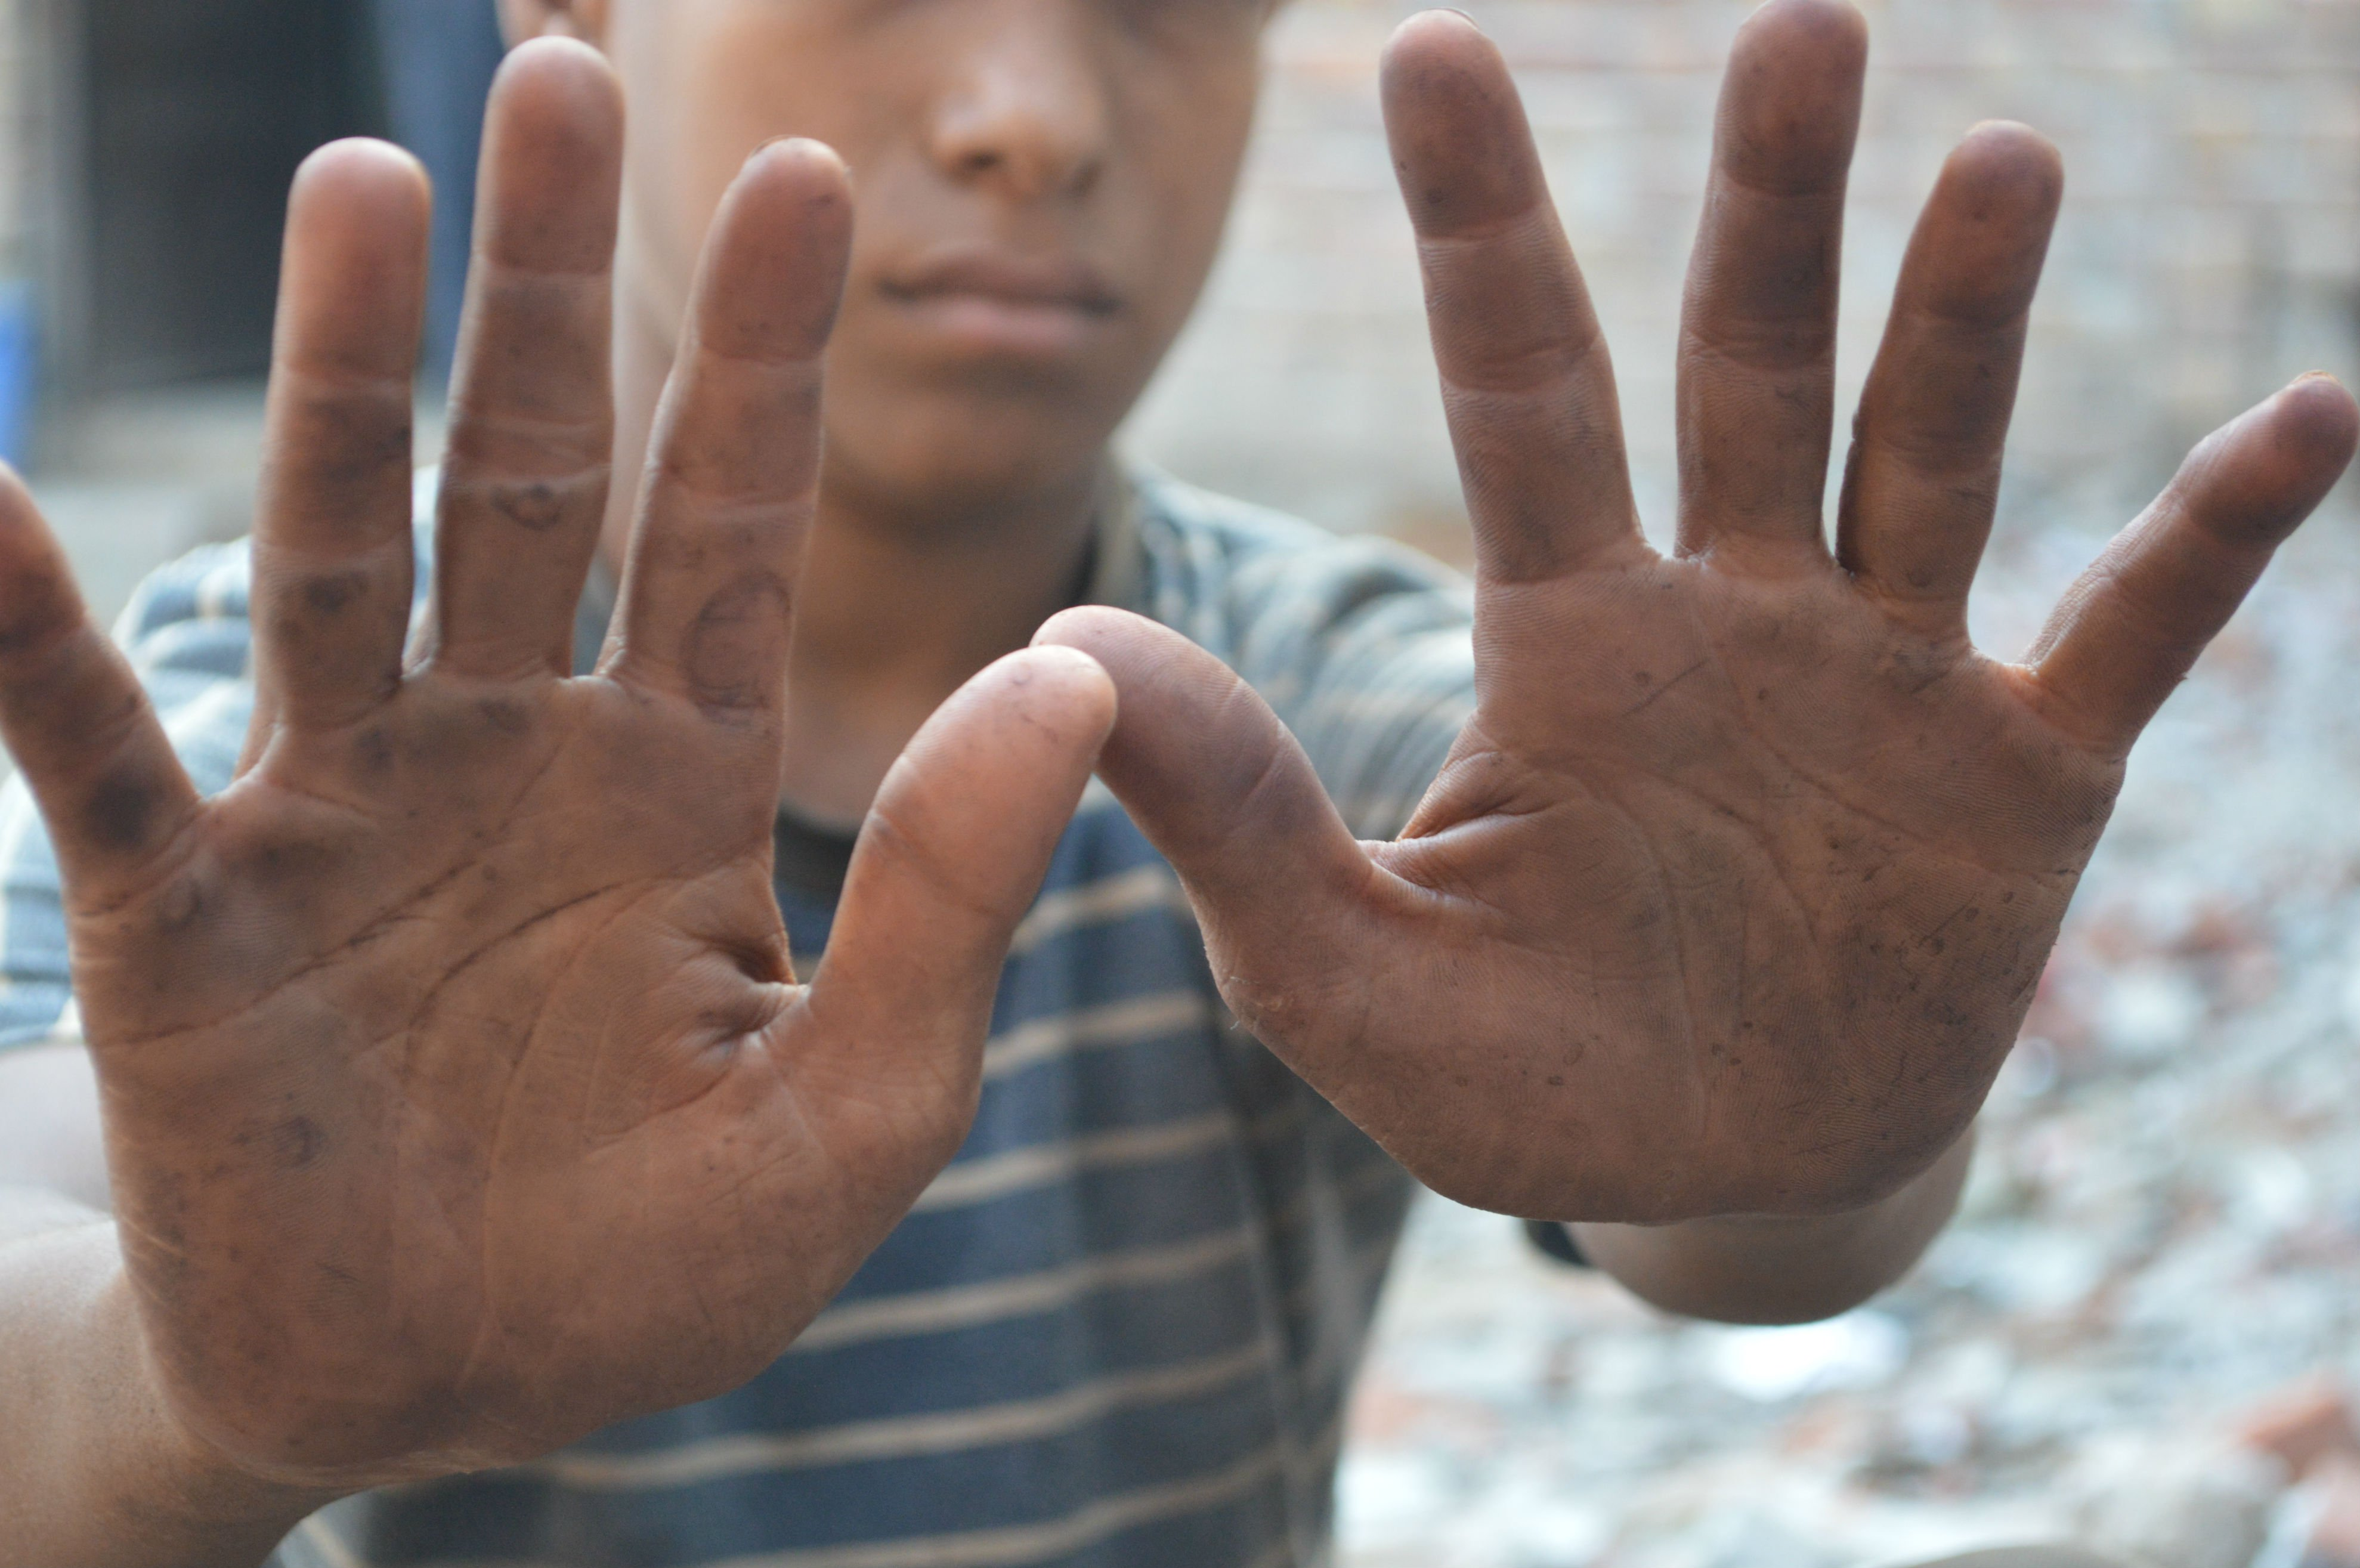 The Face of Child Labour Sakib-BODY-03.jpg